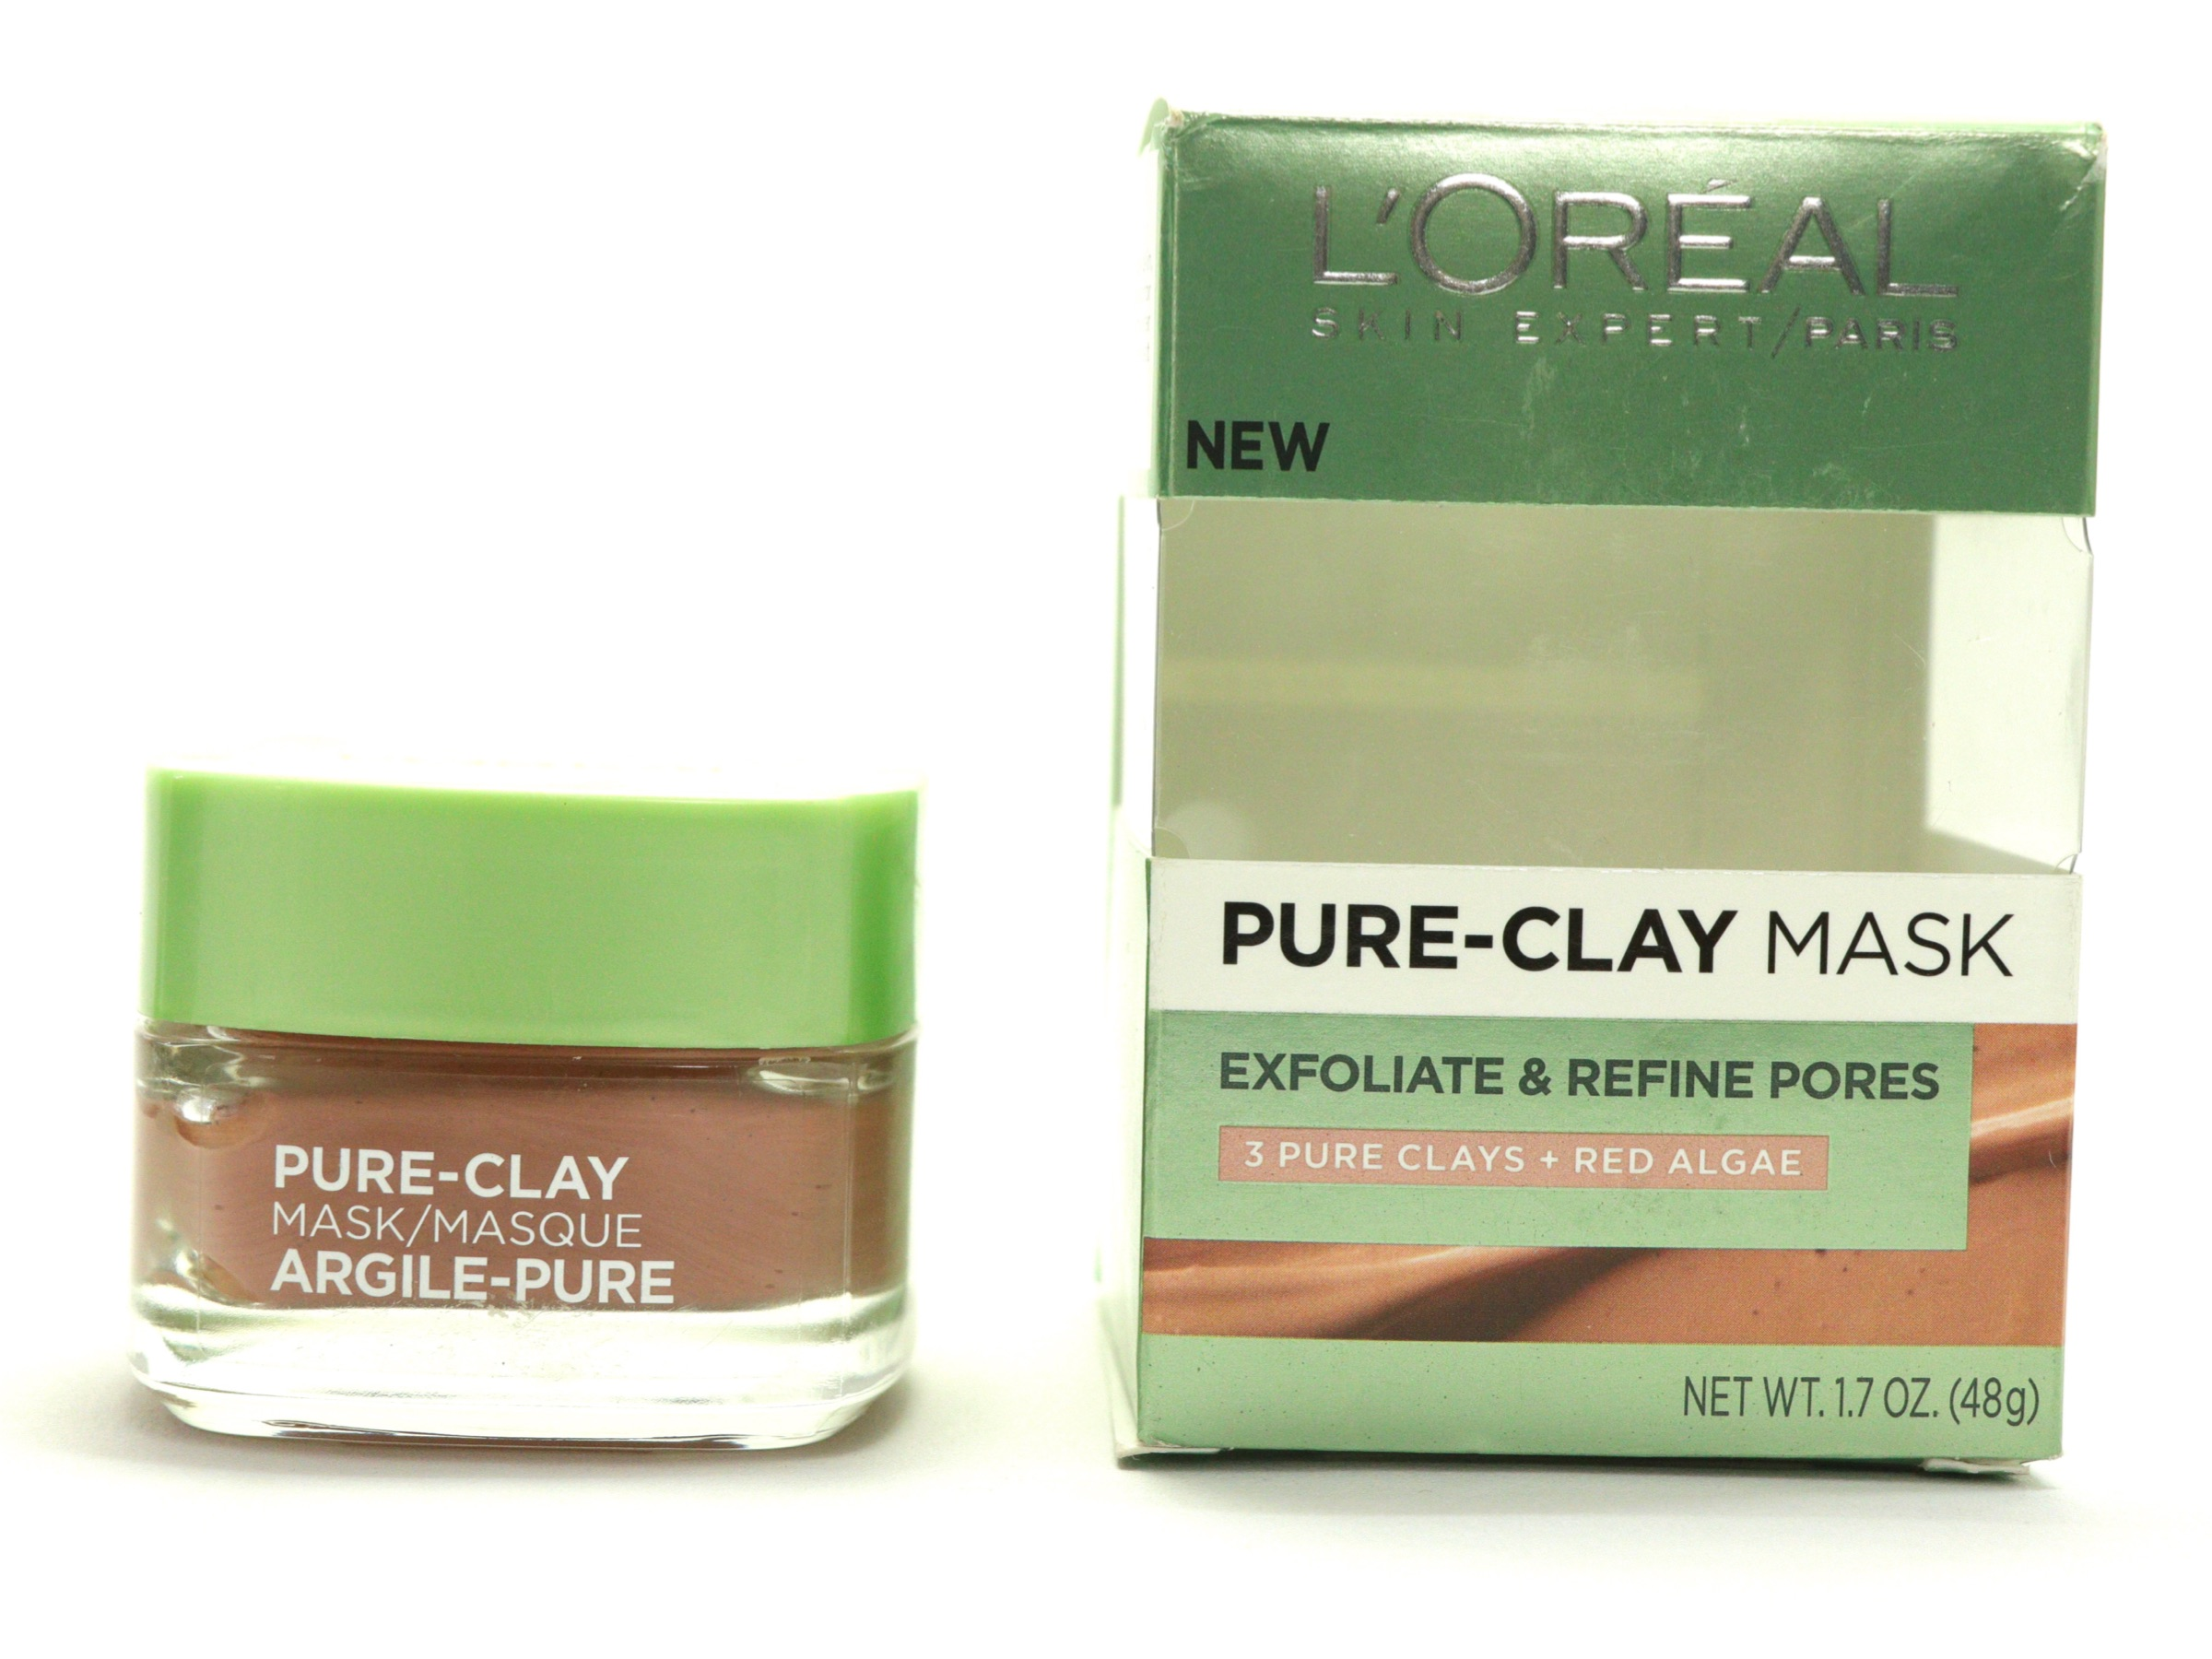 d98721bccbb L'Oreal Exfoliate & Refine Pores Clay Mask Review, Swatches